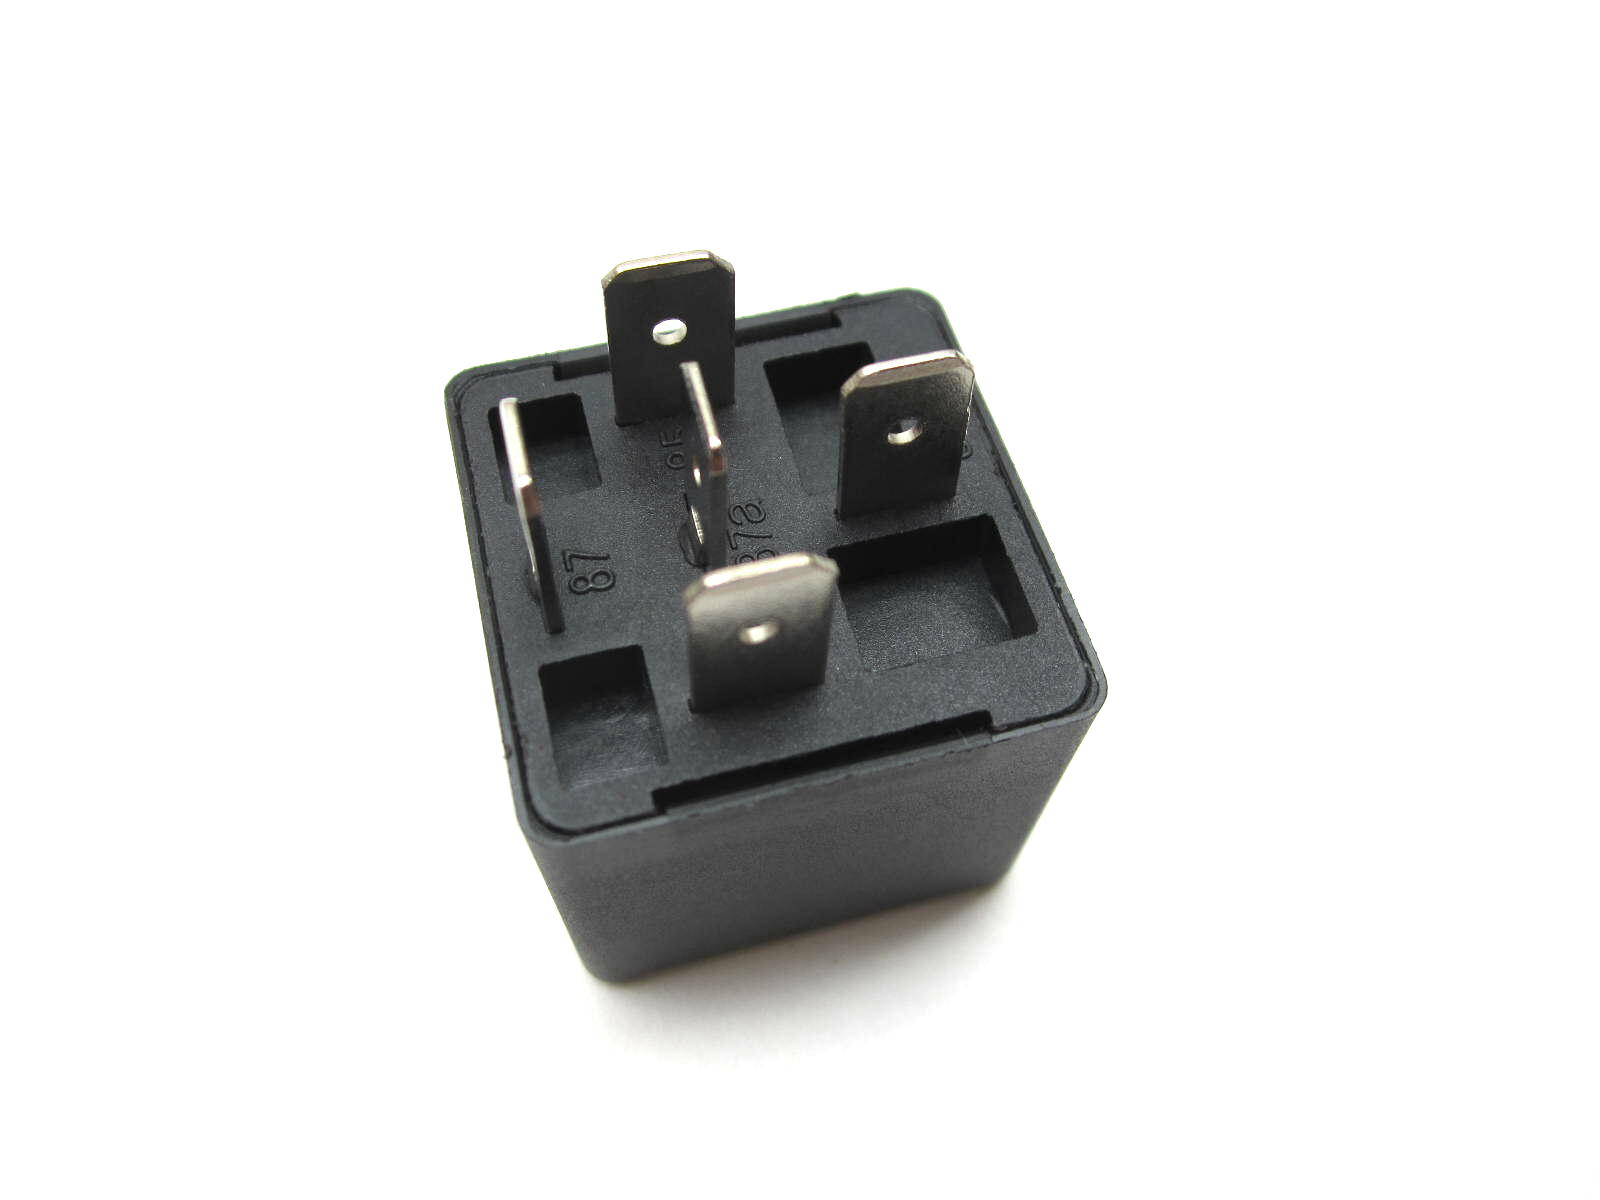 starter relay 5 pin 12V40A cube LM4/5 Cal3 Mille 1000S SP3